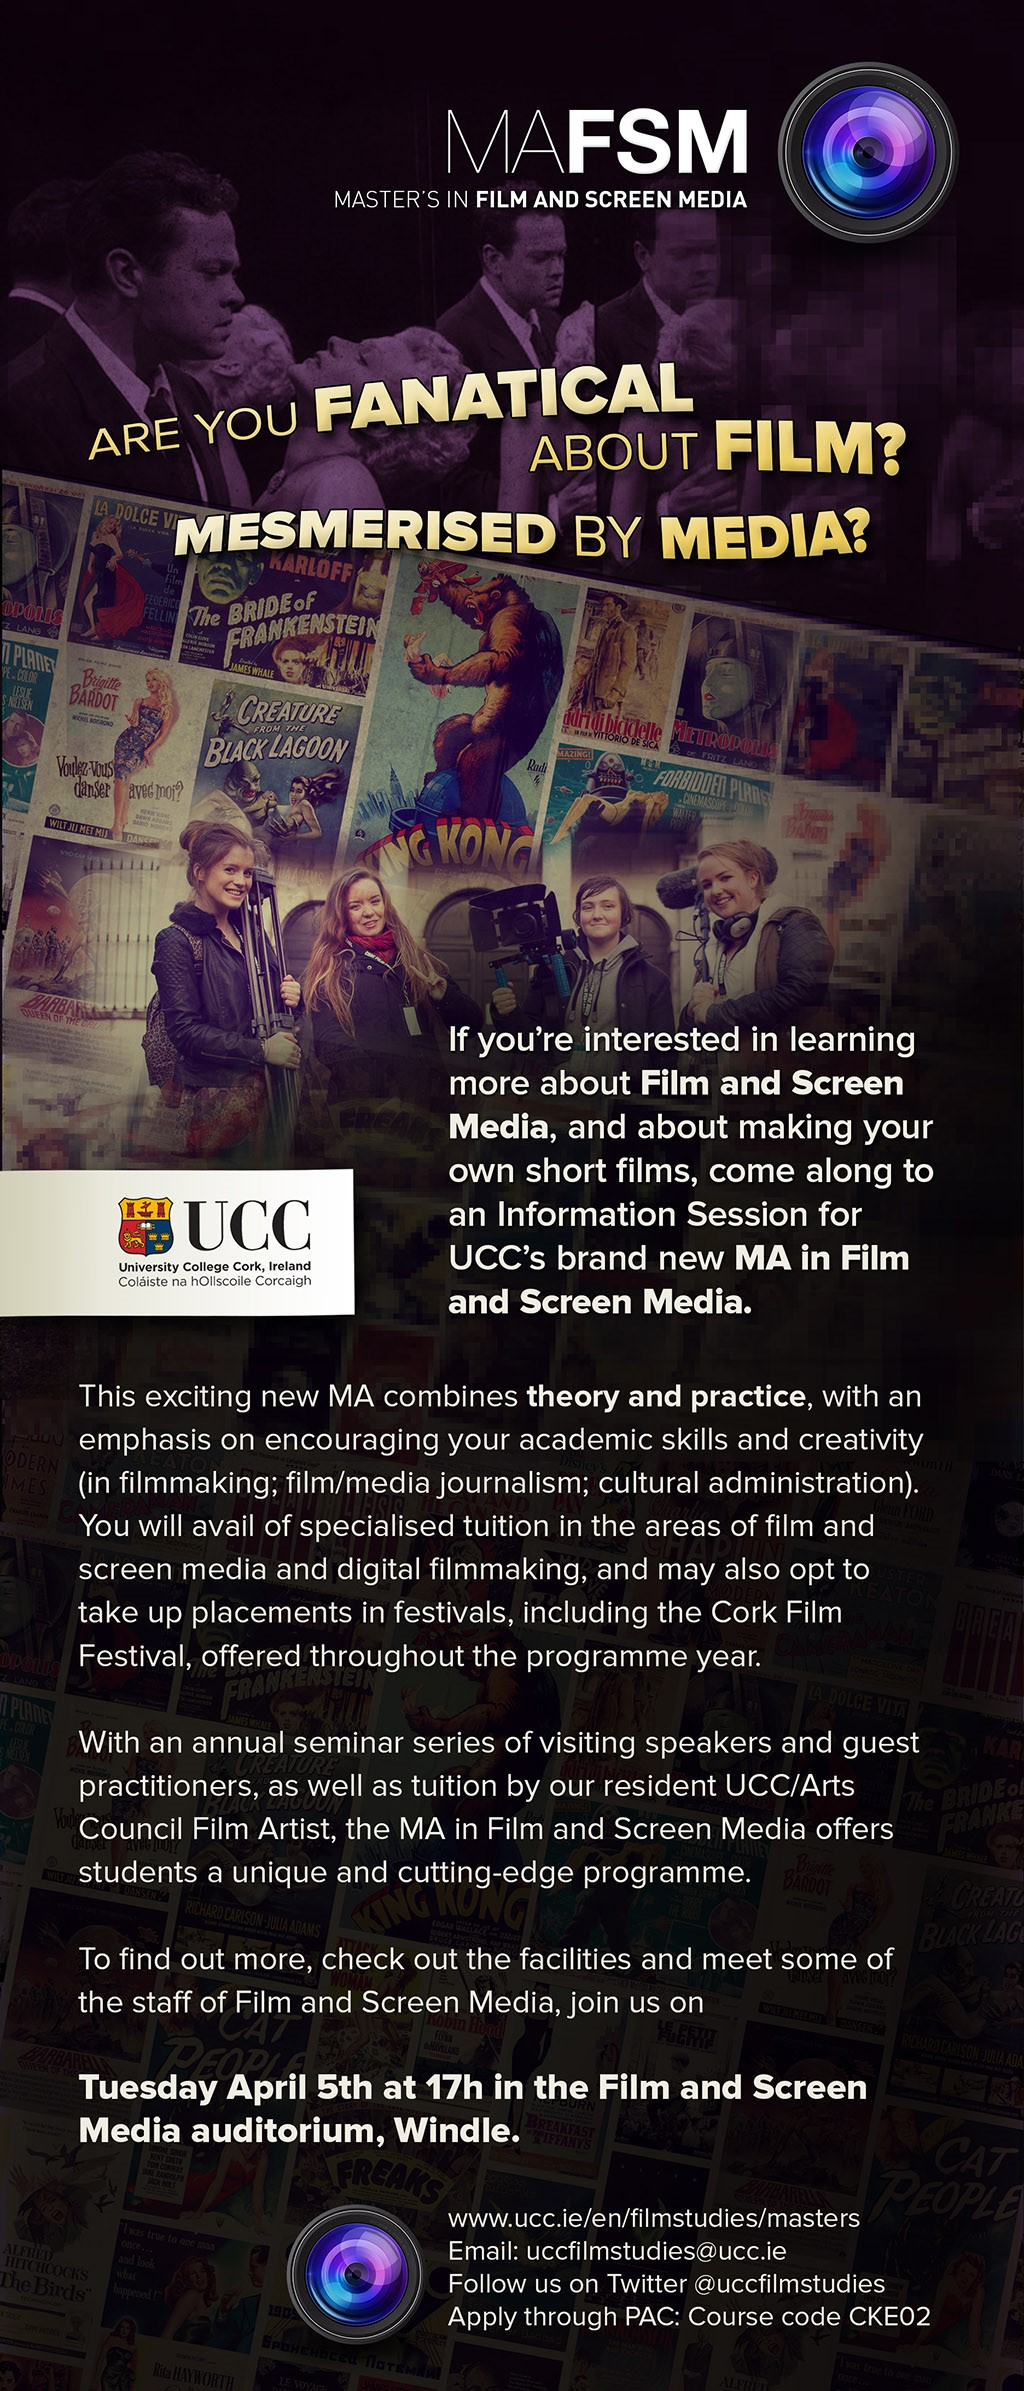 MA in Film and Screen Media Information Session Tuesday 5th April, 5:00pm. Film and Screen Media Auditorium Windle.